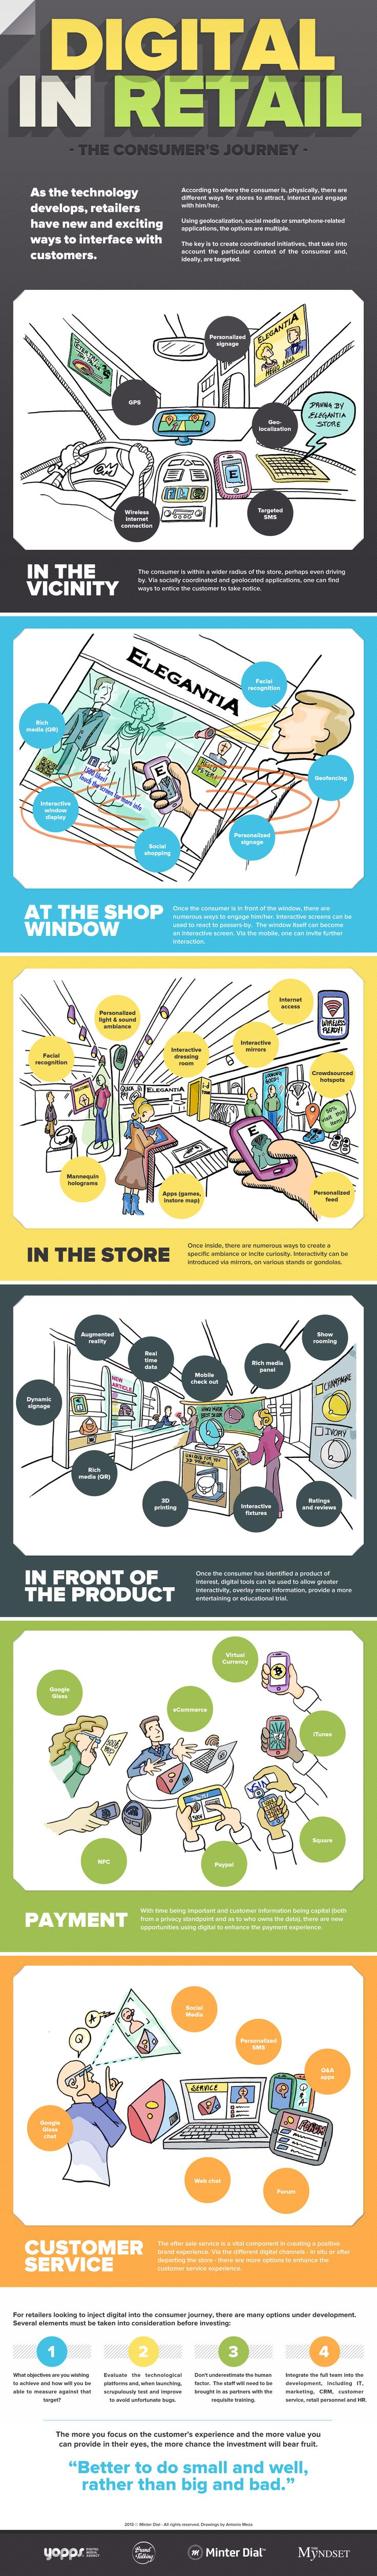 How to use Digital in Retail #retail #VAD  #socialmedia | You can call it interfacing woth customers or you can call it stalking. THE WINNING BRAND/BUSINESS/POS will be the one people store in their brain and recall by themselves because they believe they will miss out if they not recall it in the very moment. NO one likes to recall stalkers! | Kundennähe via Mobile und Social Media ähnelt vielfach dem Stalking und an Stalker erinnert sich niemand gerne